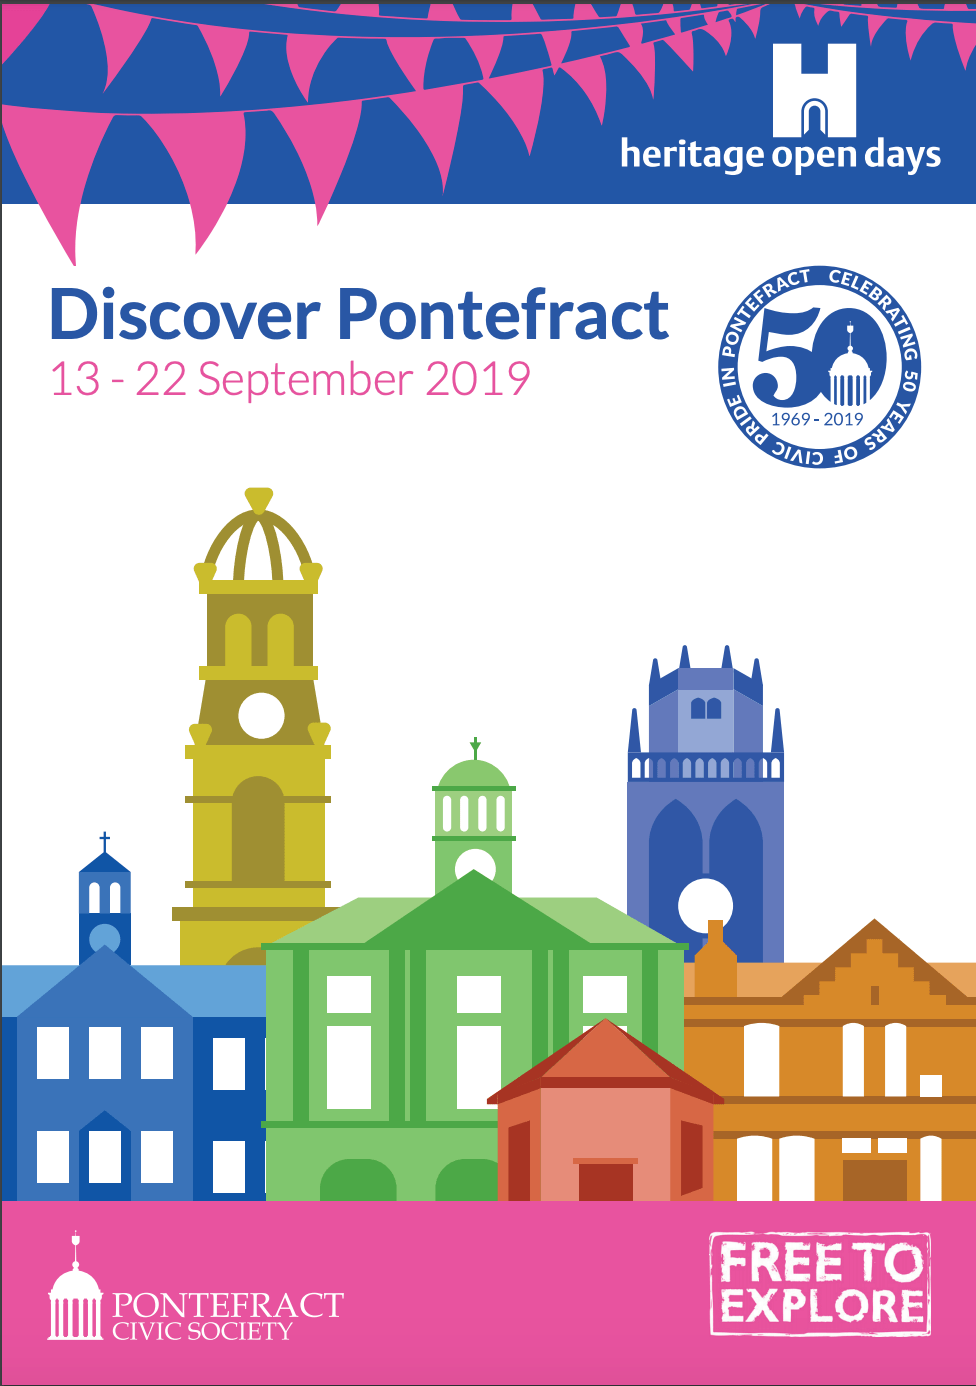 Discover Pontefract Heritage Open Days poster.